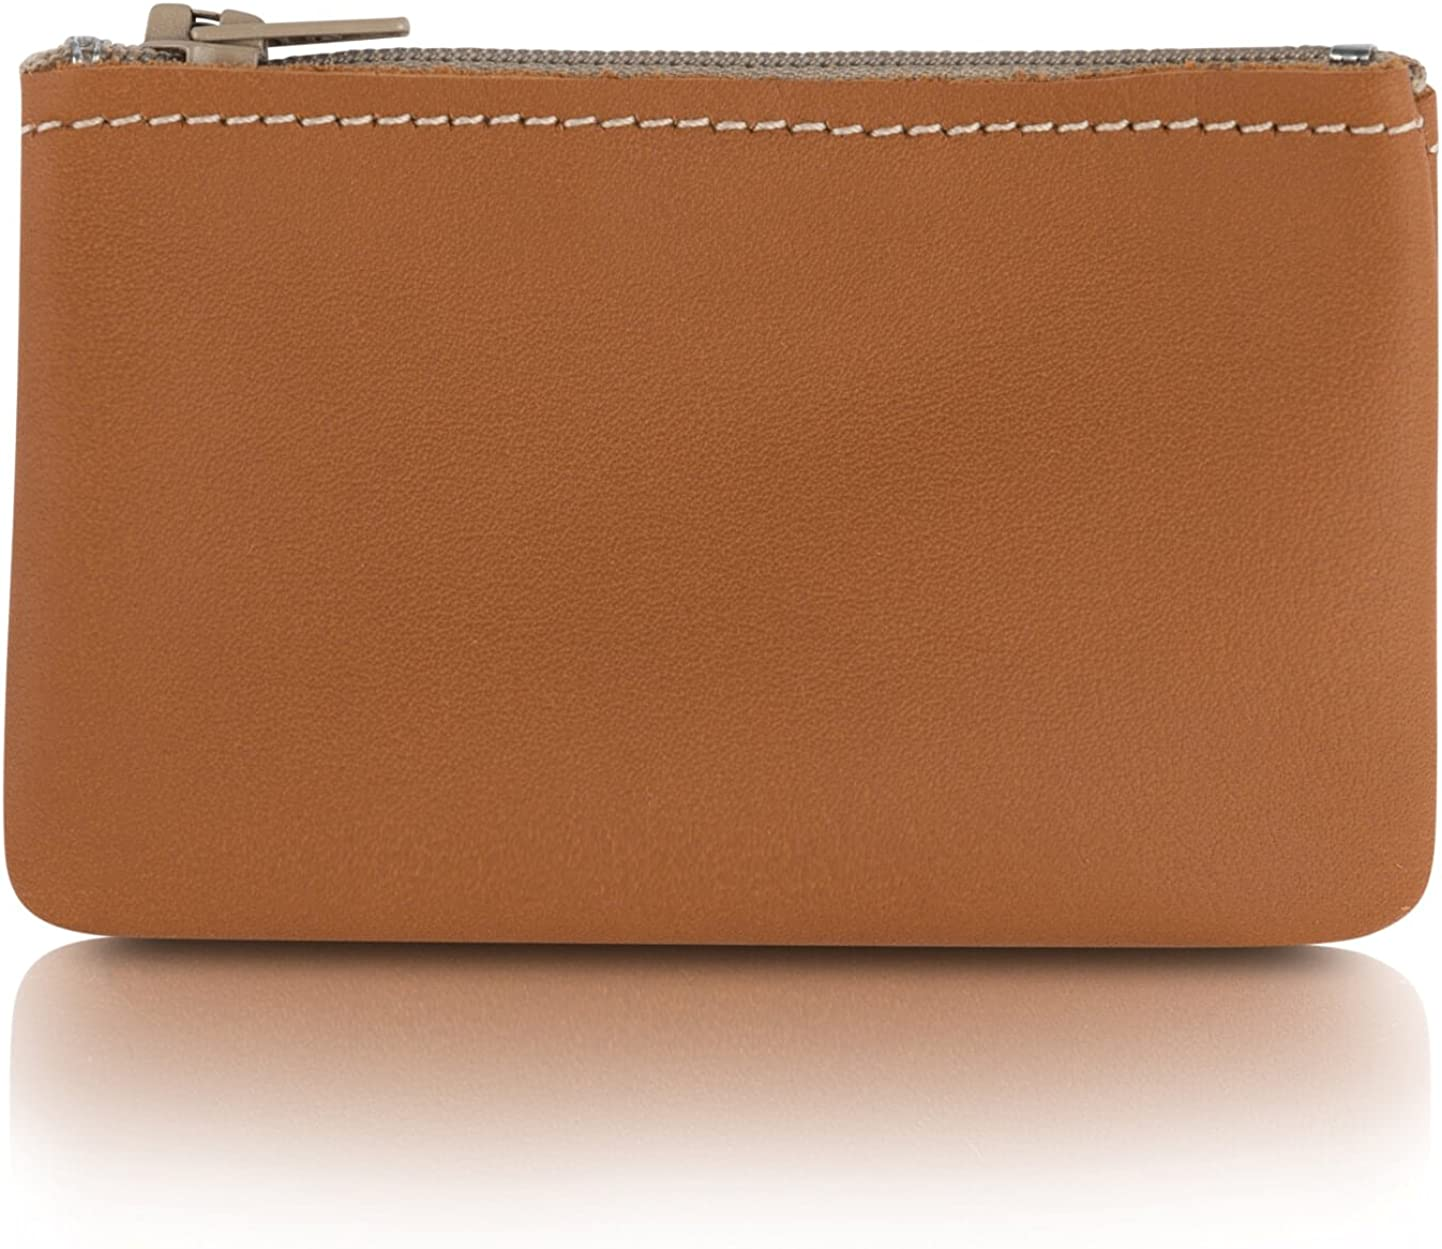 Made In USA. 6 inch 4.5 credit cards holder sizer Gold Color Super Soft Coin Purse 4 Inch size Deerskin Leather Zipper Pouch